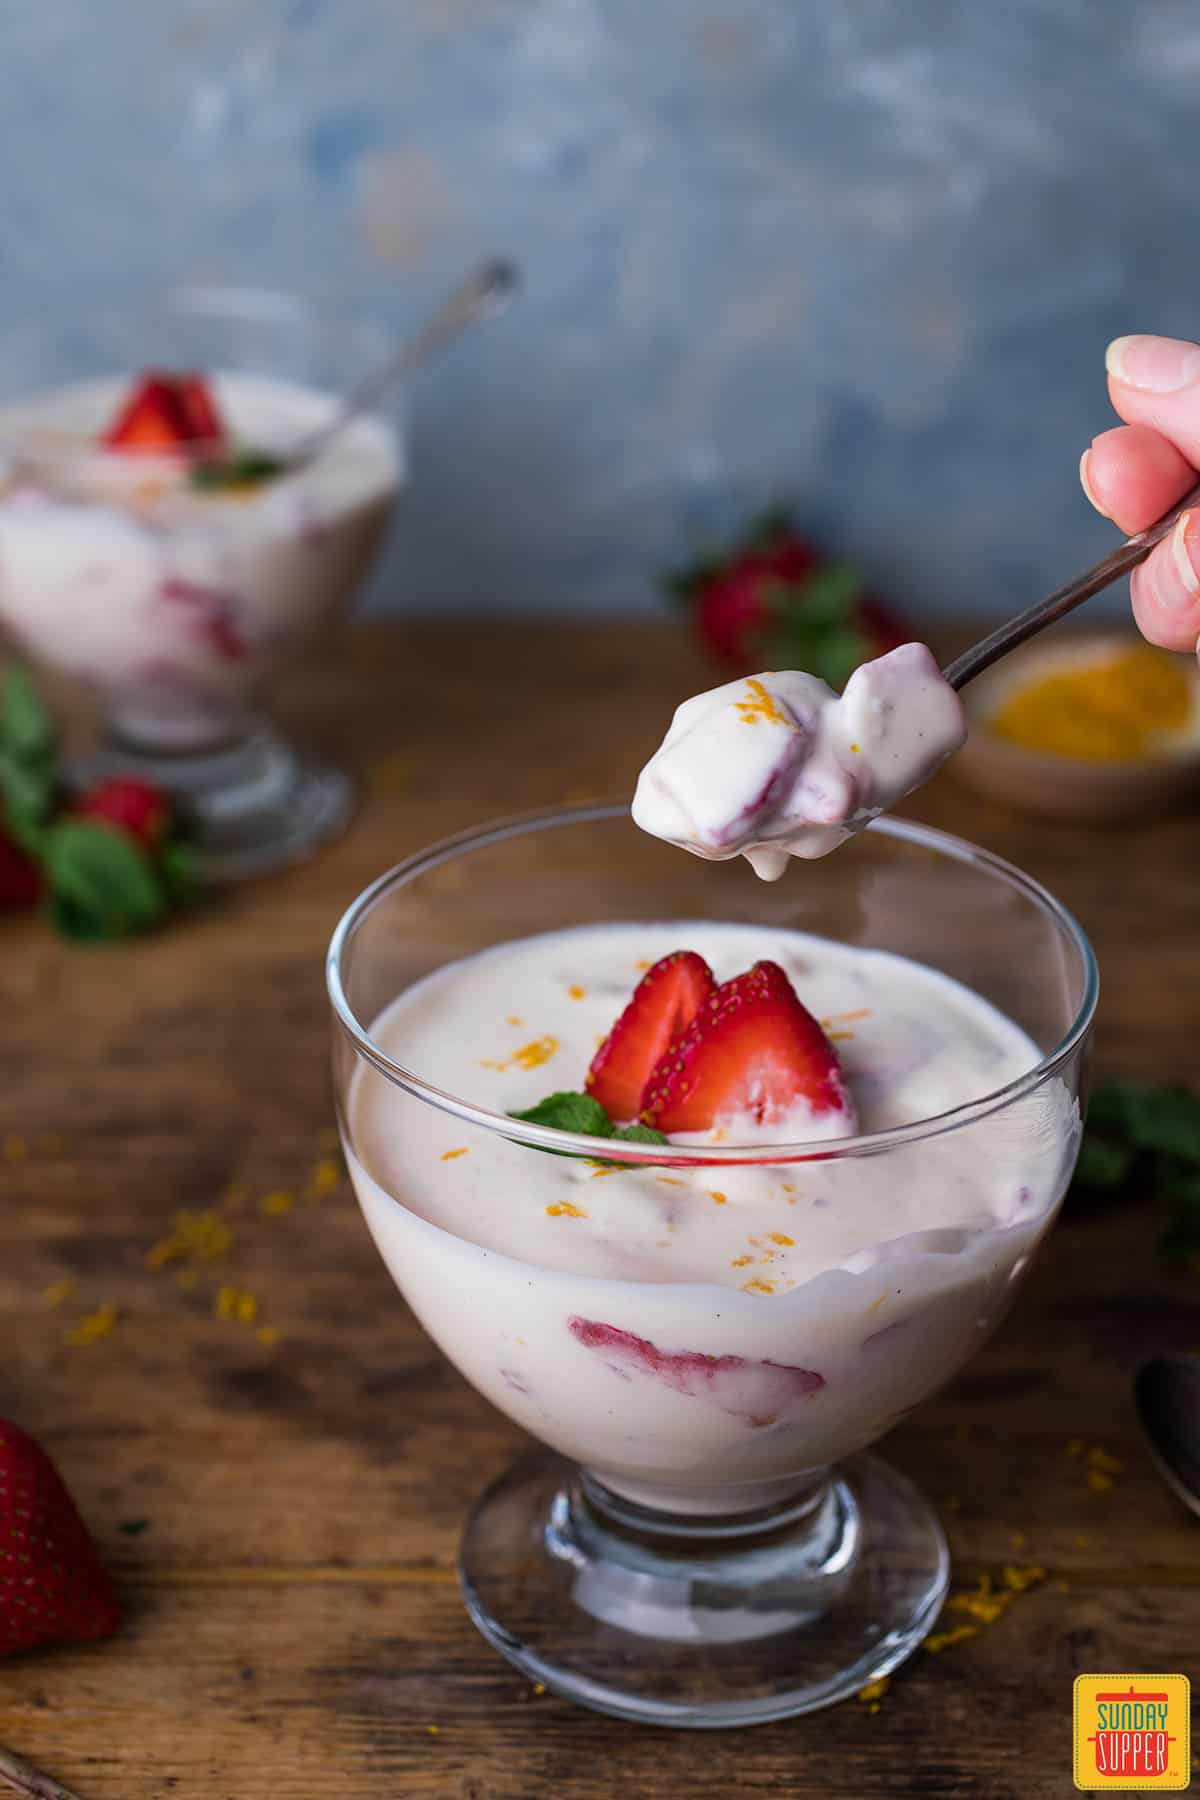 Two bowls of fresh Mexican strawberries and cream